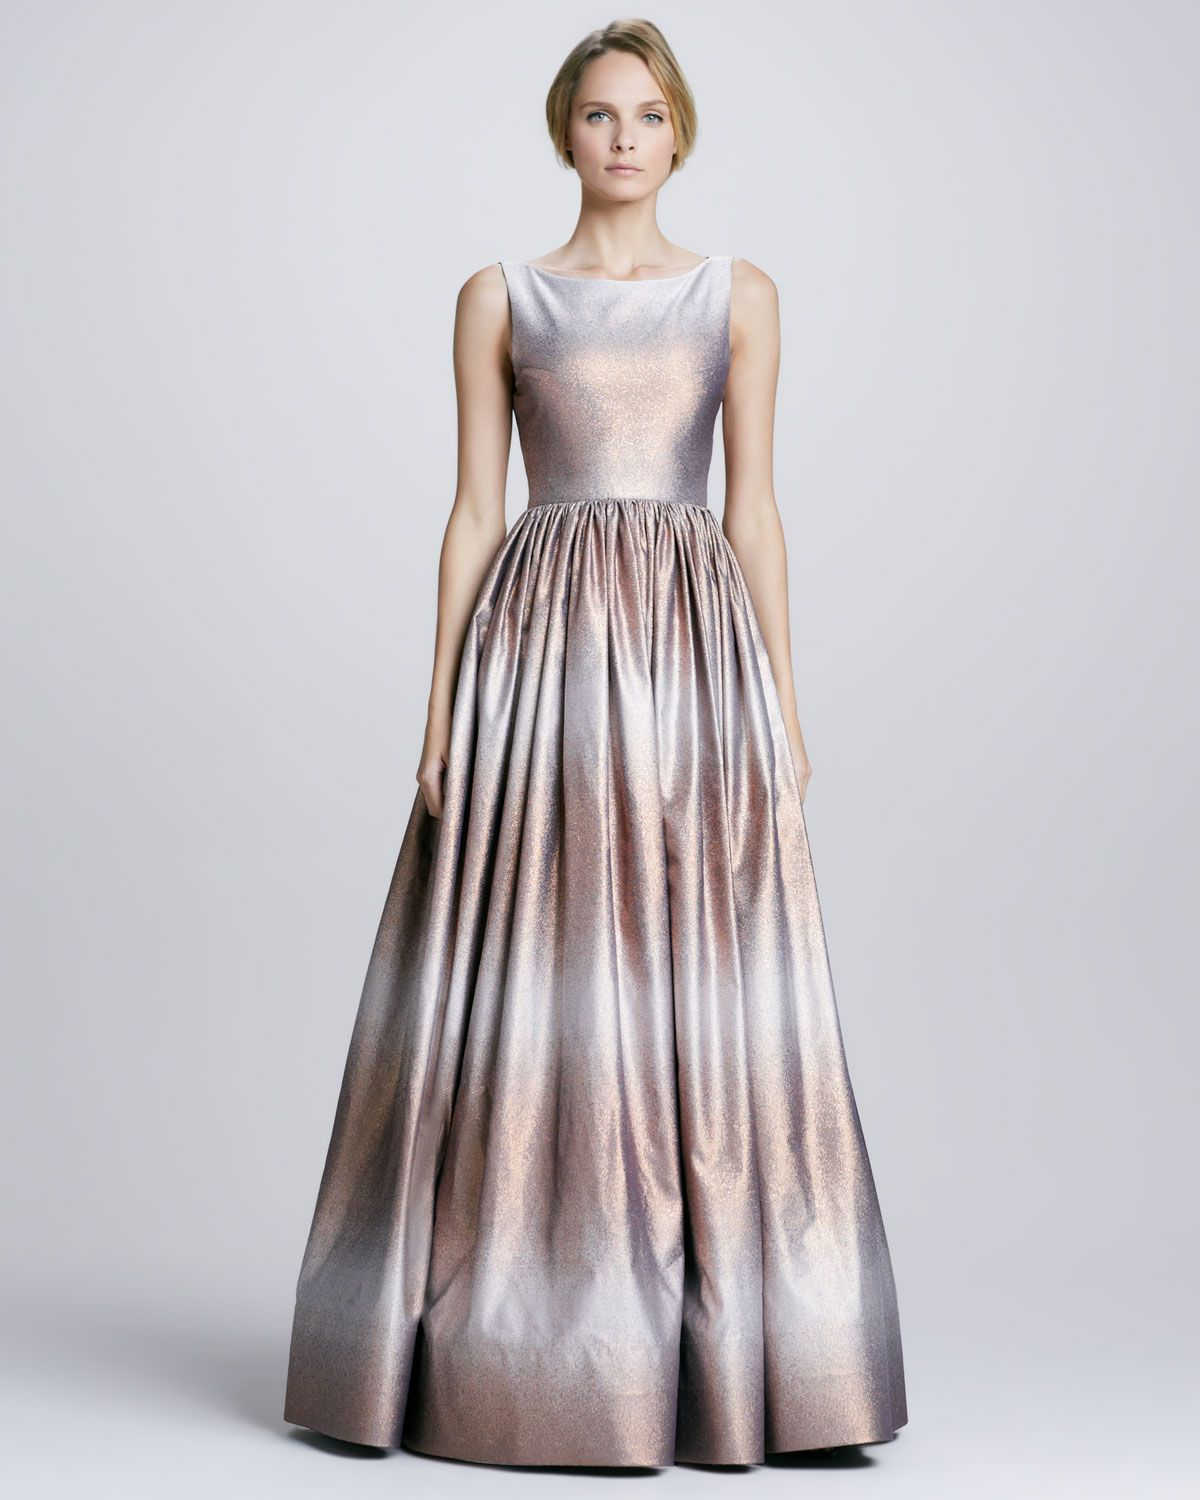 Alice + Olivia Caddie Metallic Ombre Gown - Neiman Marcus | Evening ...